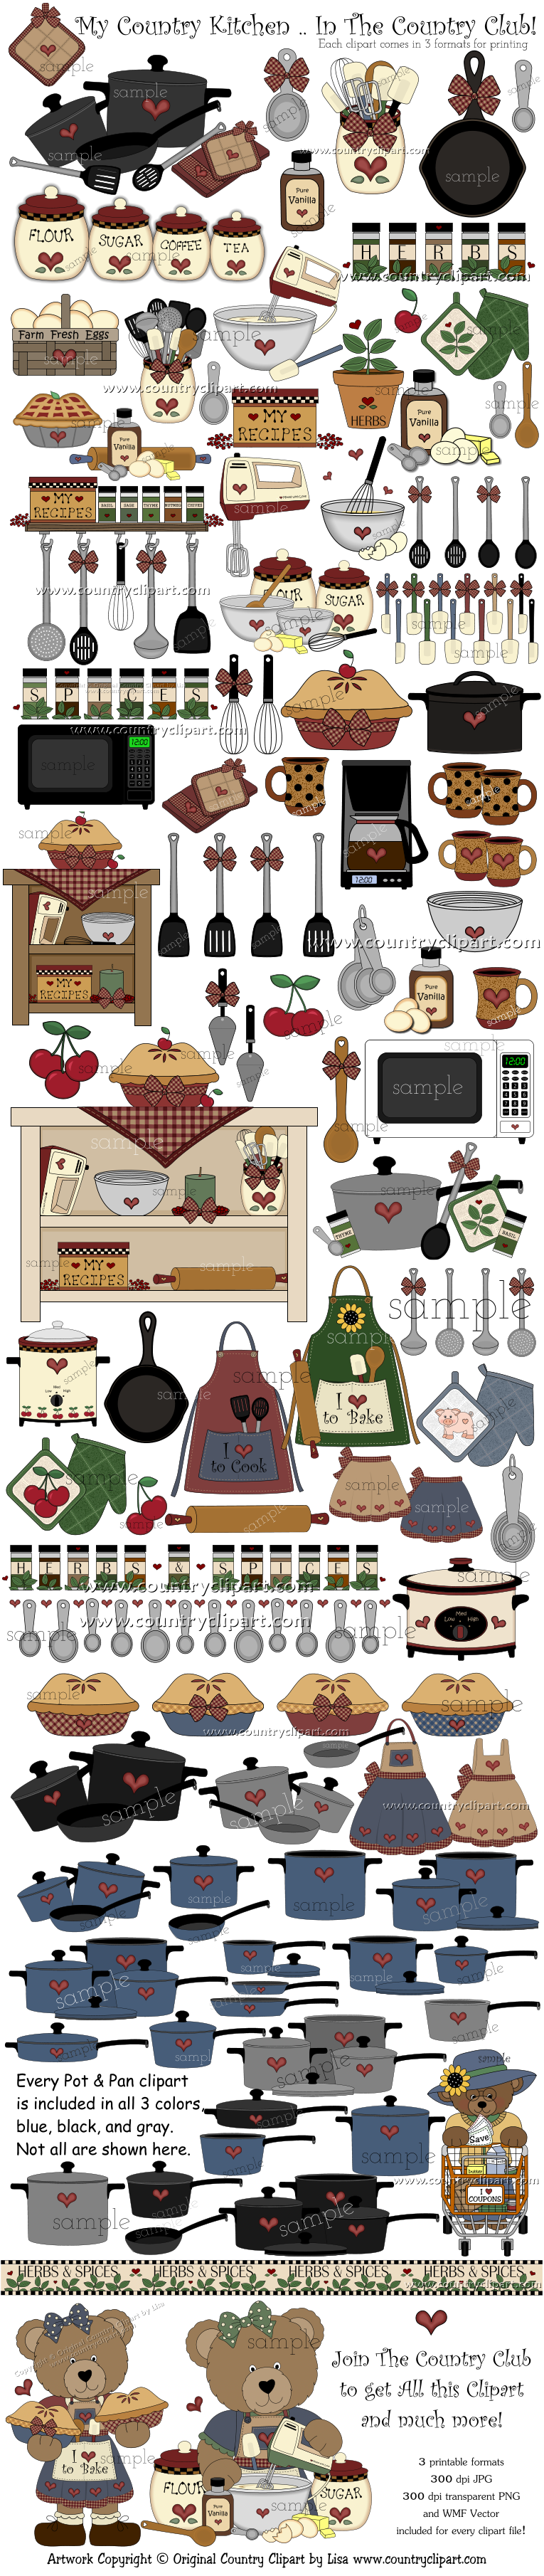 Kitchen Cooking Baking Clipart